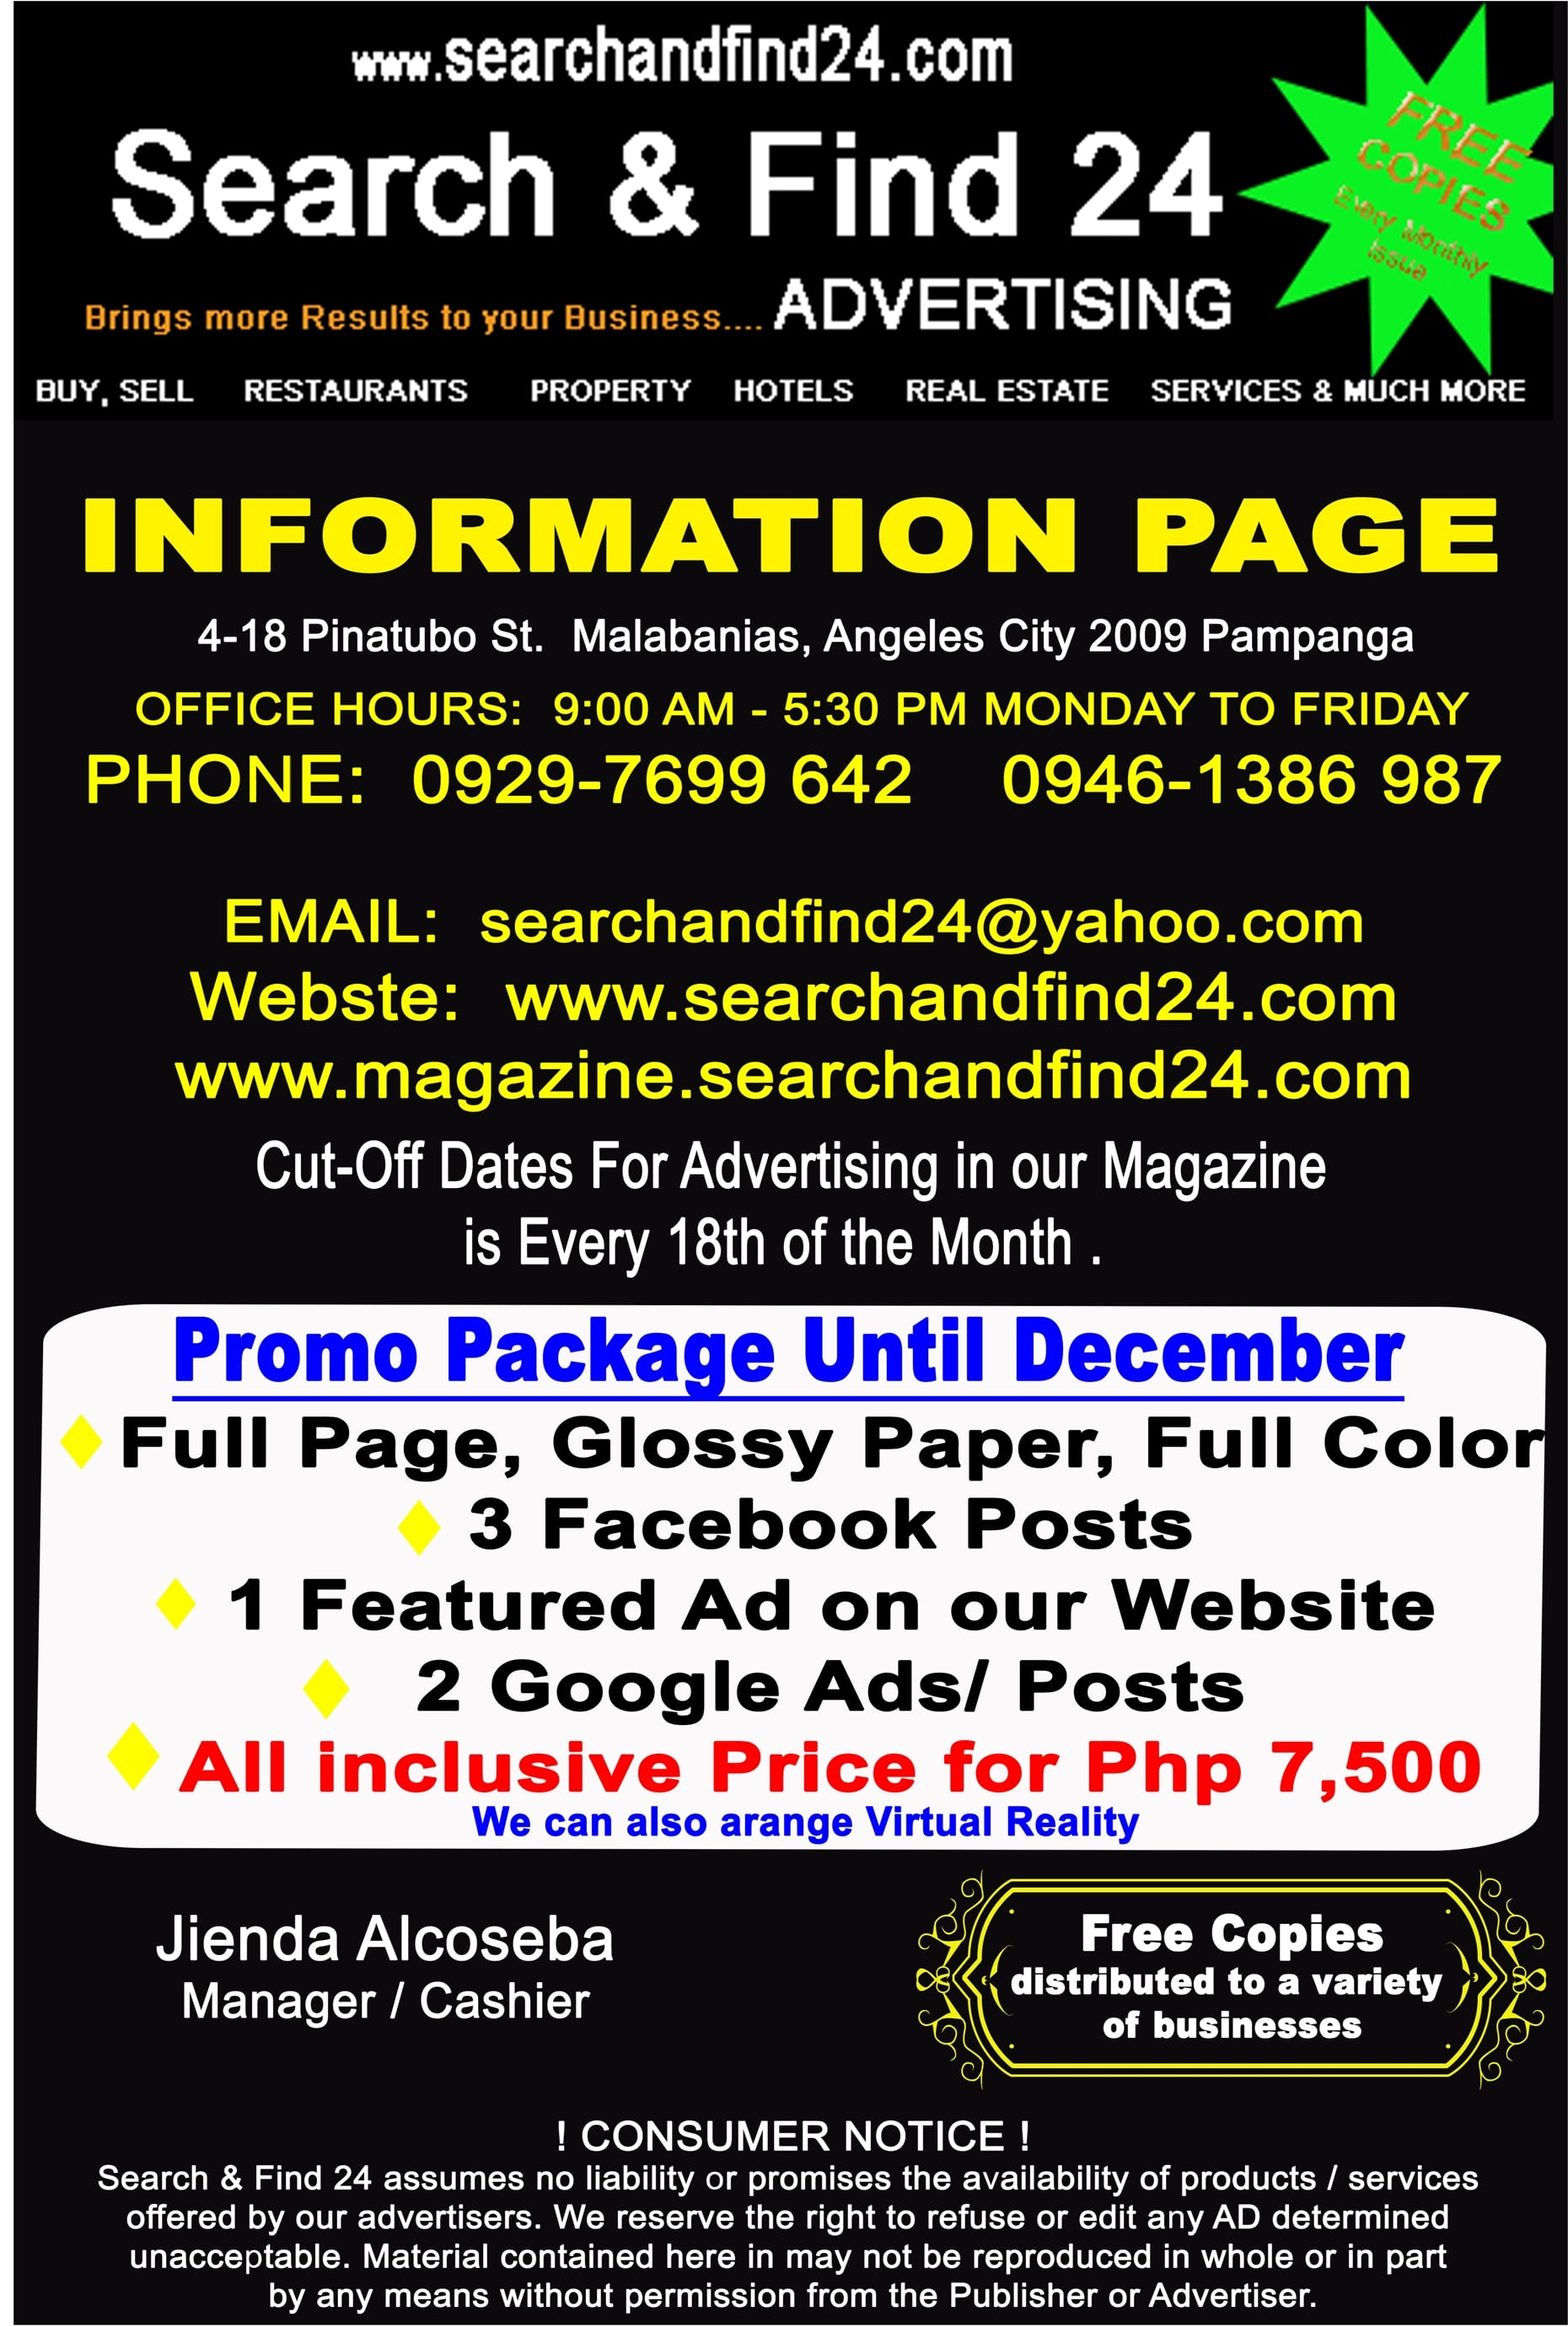 https://www.searchandfind24.com For all your Advertising Needs. Now in Bohol